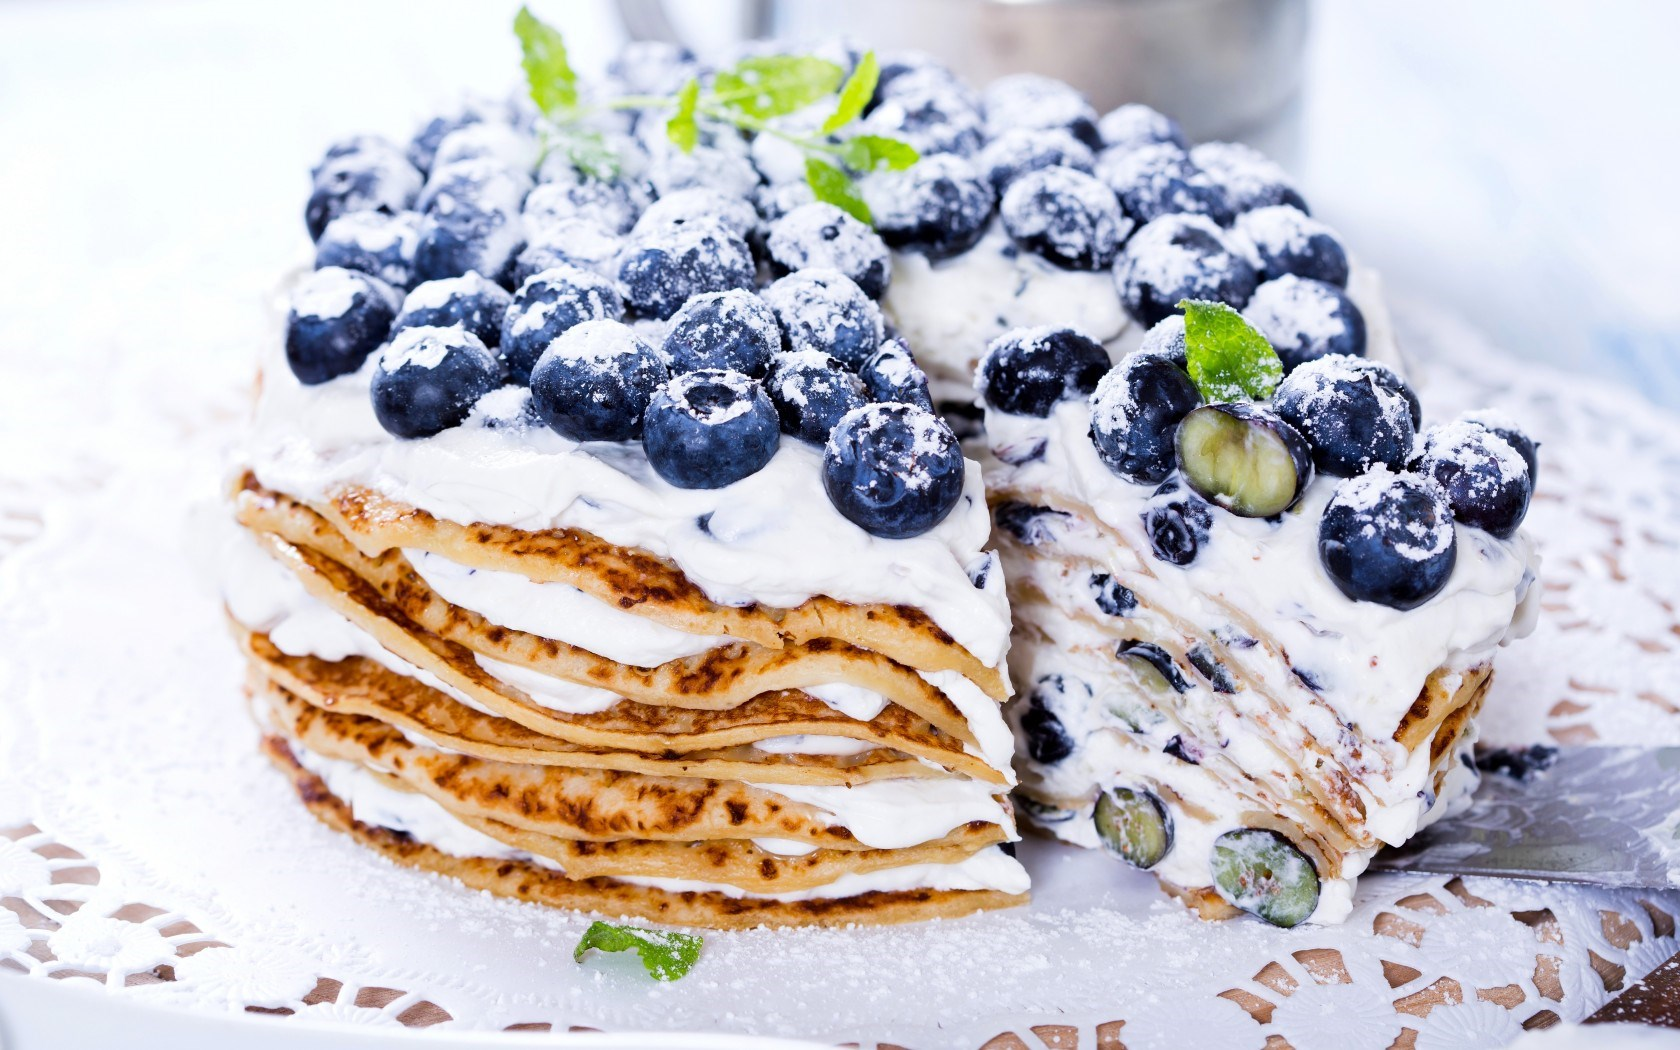 Pancakes Berries Blueberries Blueberry Cream Sweet Dessert